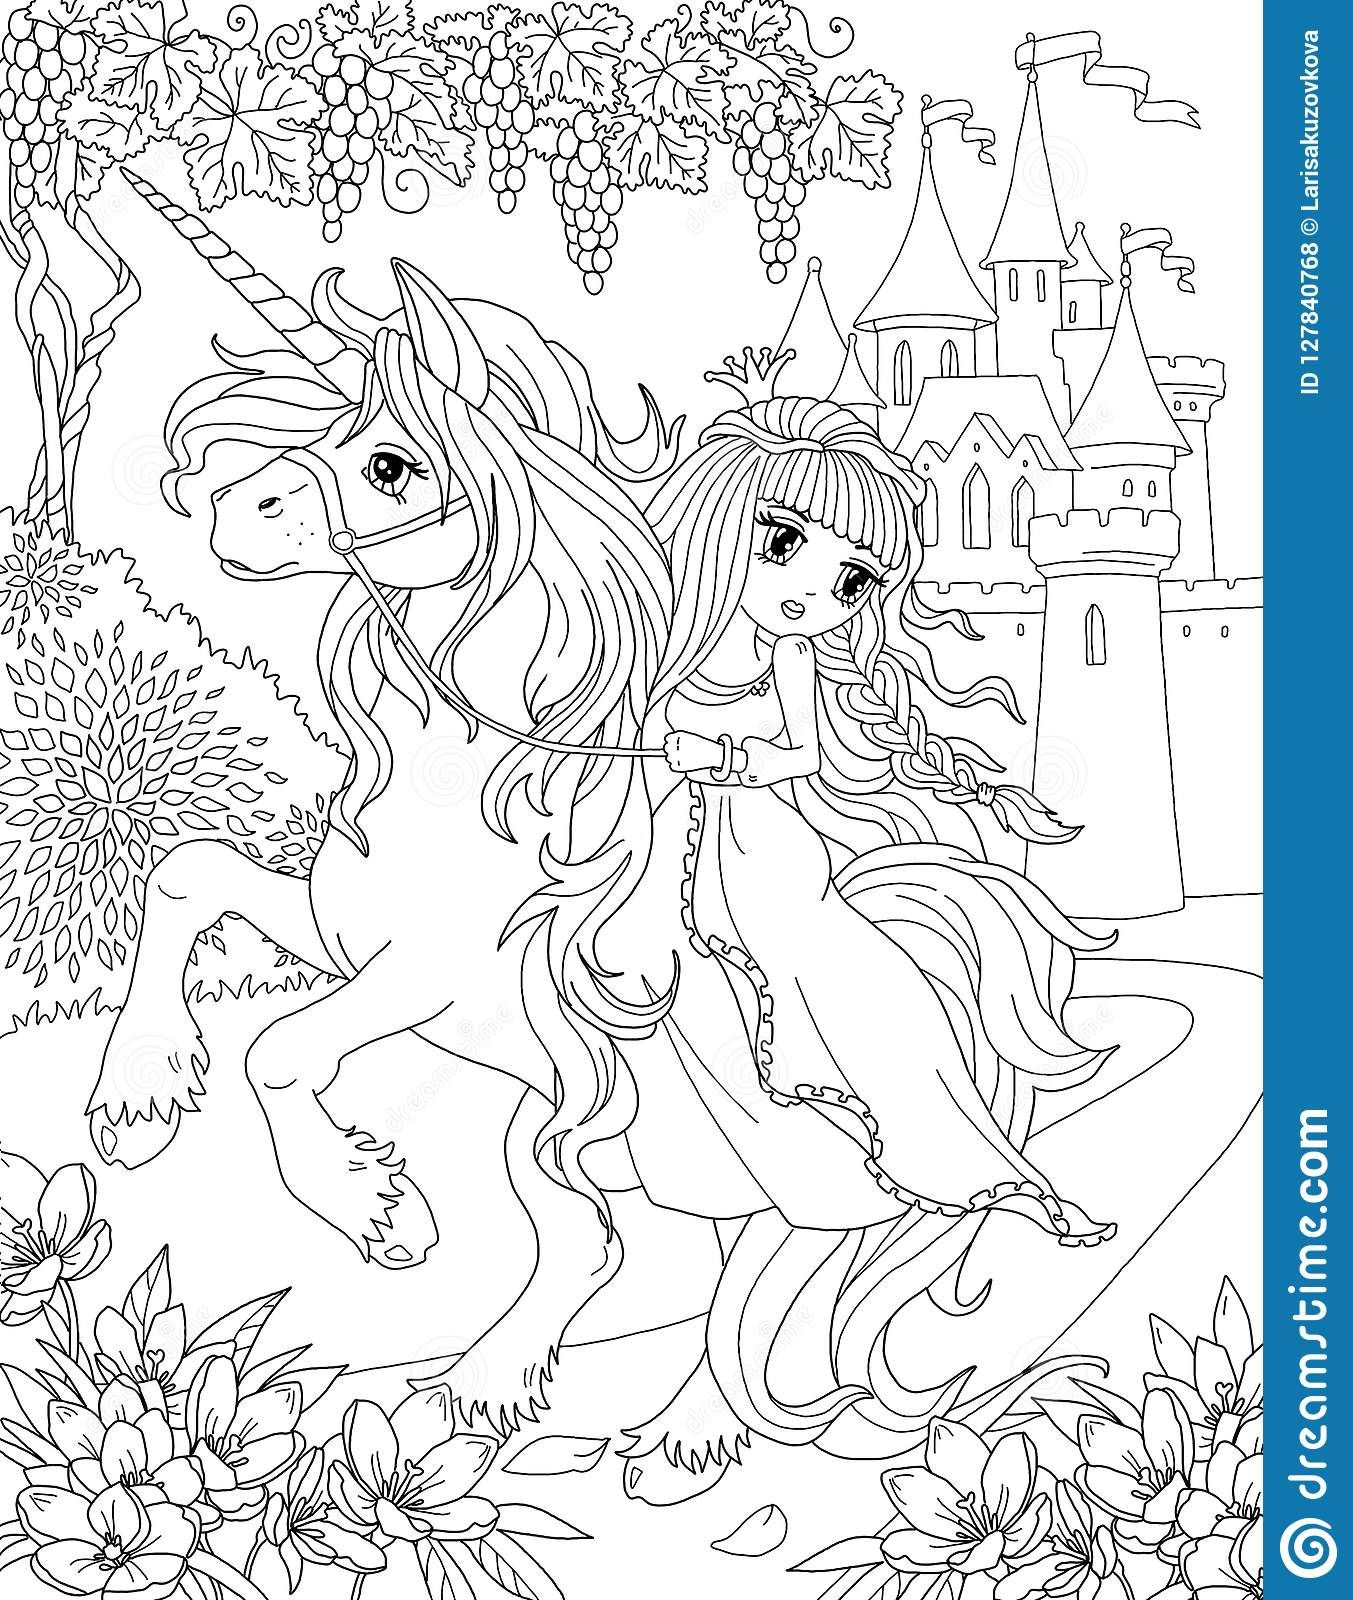 Pin By Kate Linahan On Raskraski Unicorn Coloring Pages Princess Coloring Pages Disney Coloring Pages